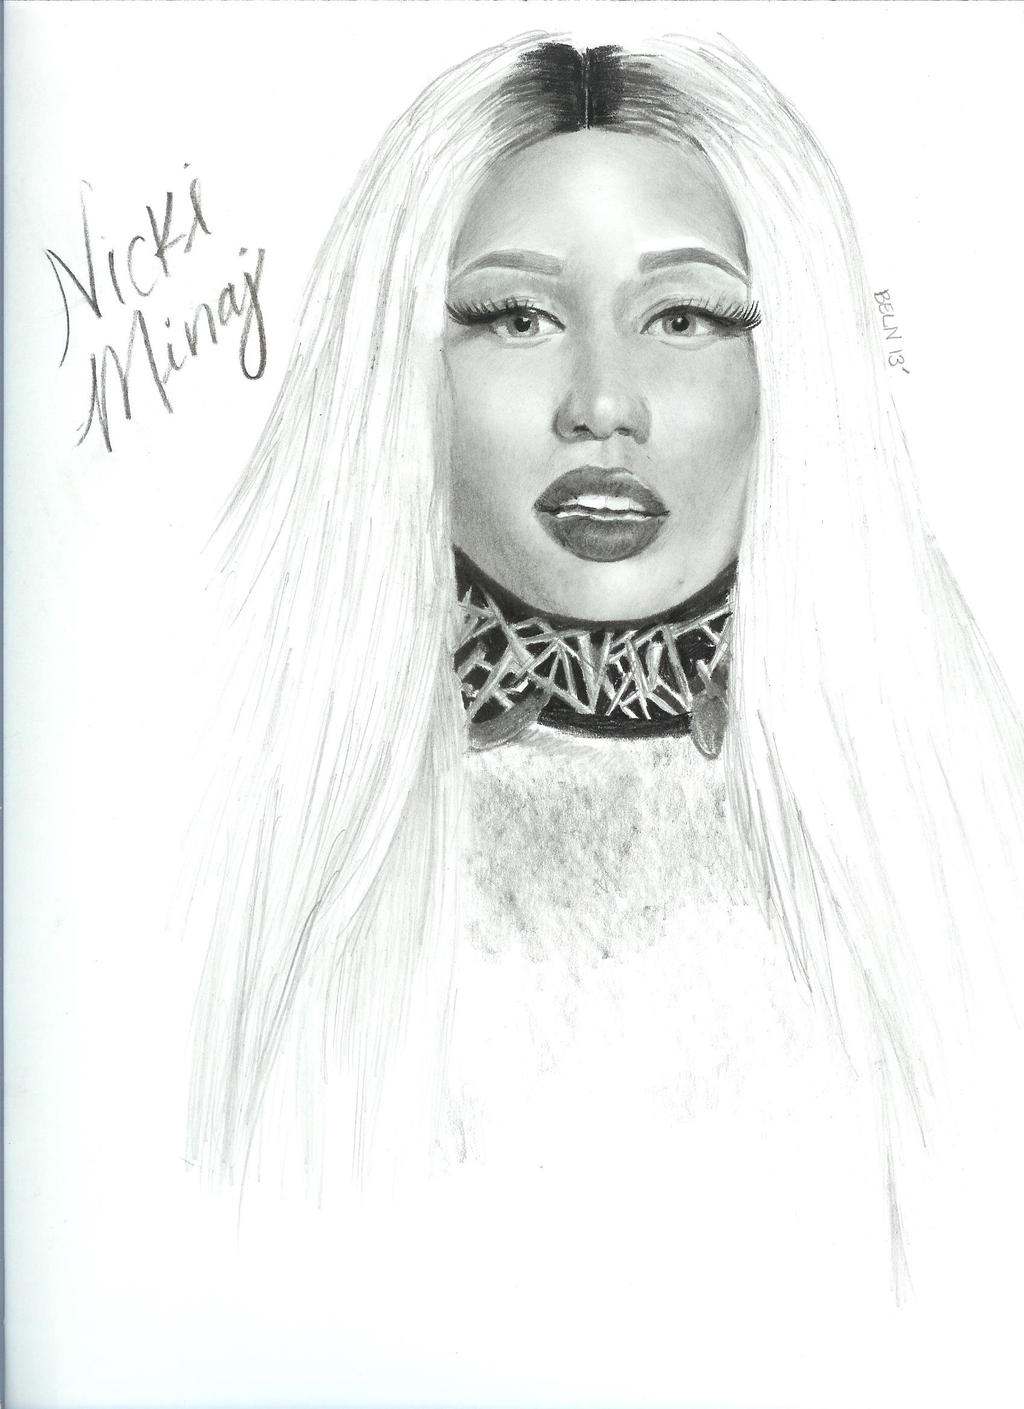 Nicki minaj part 3 by blnart18 on deviantart nicki minaj part 3 by blnart18 voltagebd Image collections